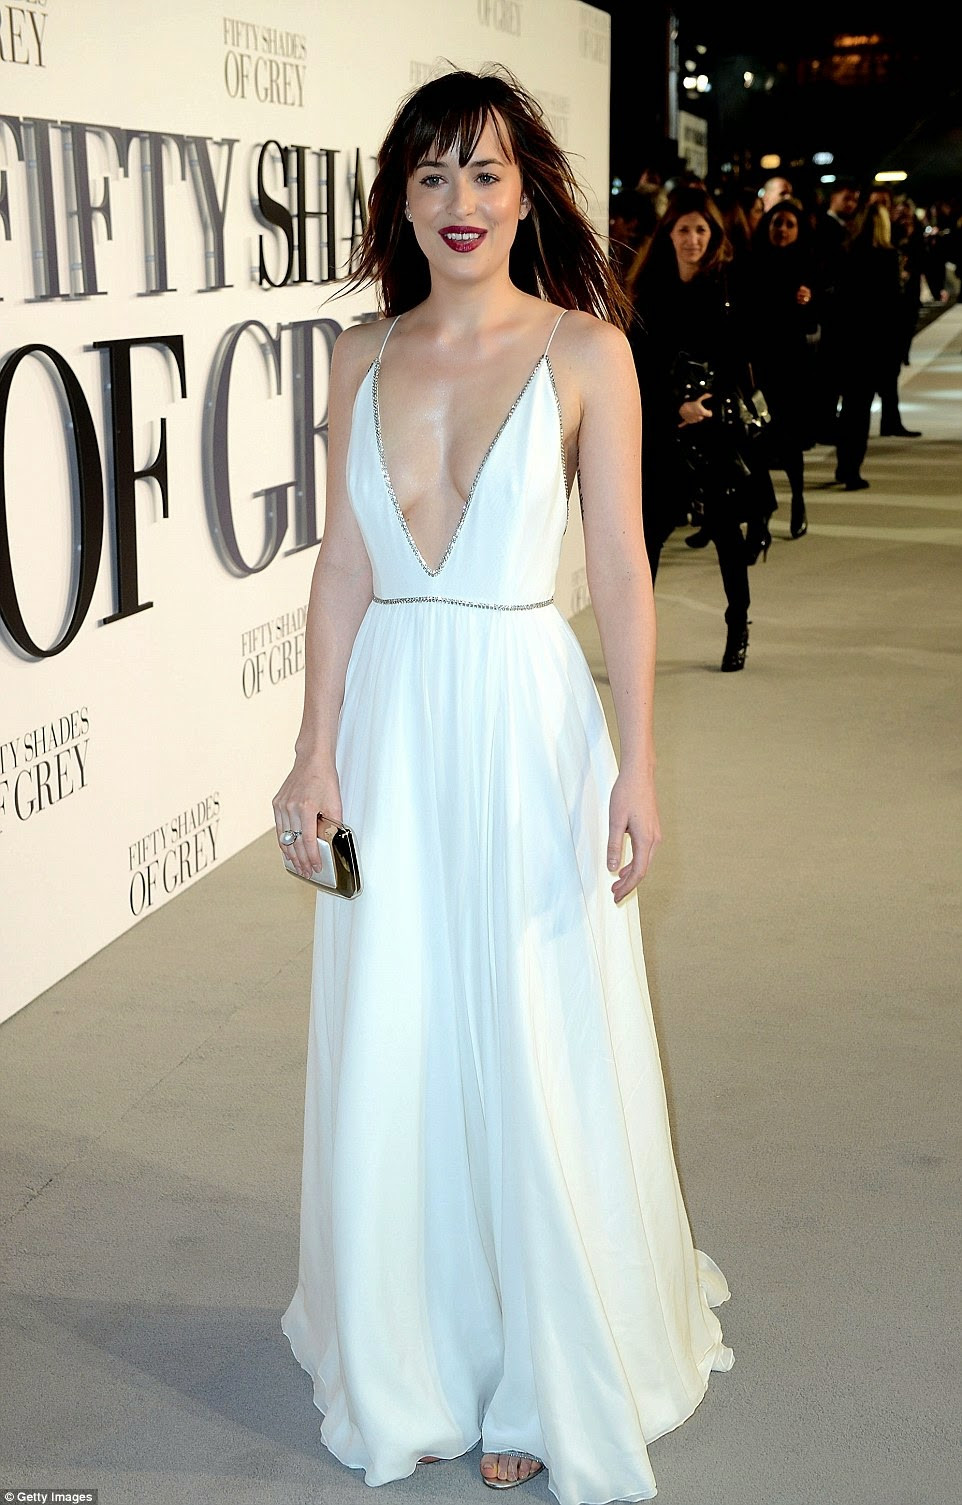 Dakota Johnson flaunts cleavage in a low-cut white dress at the 'Fifty Shades of Grey' London premiere